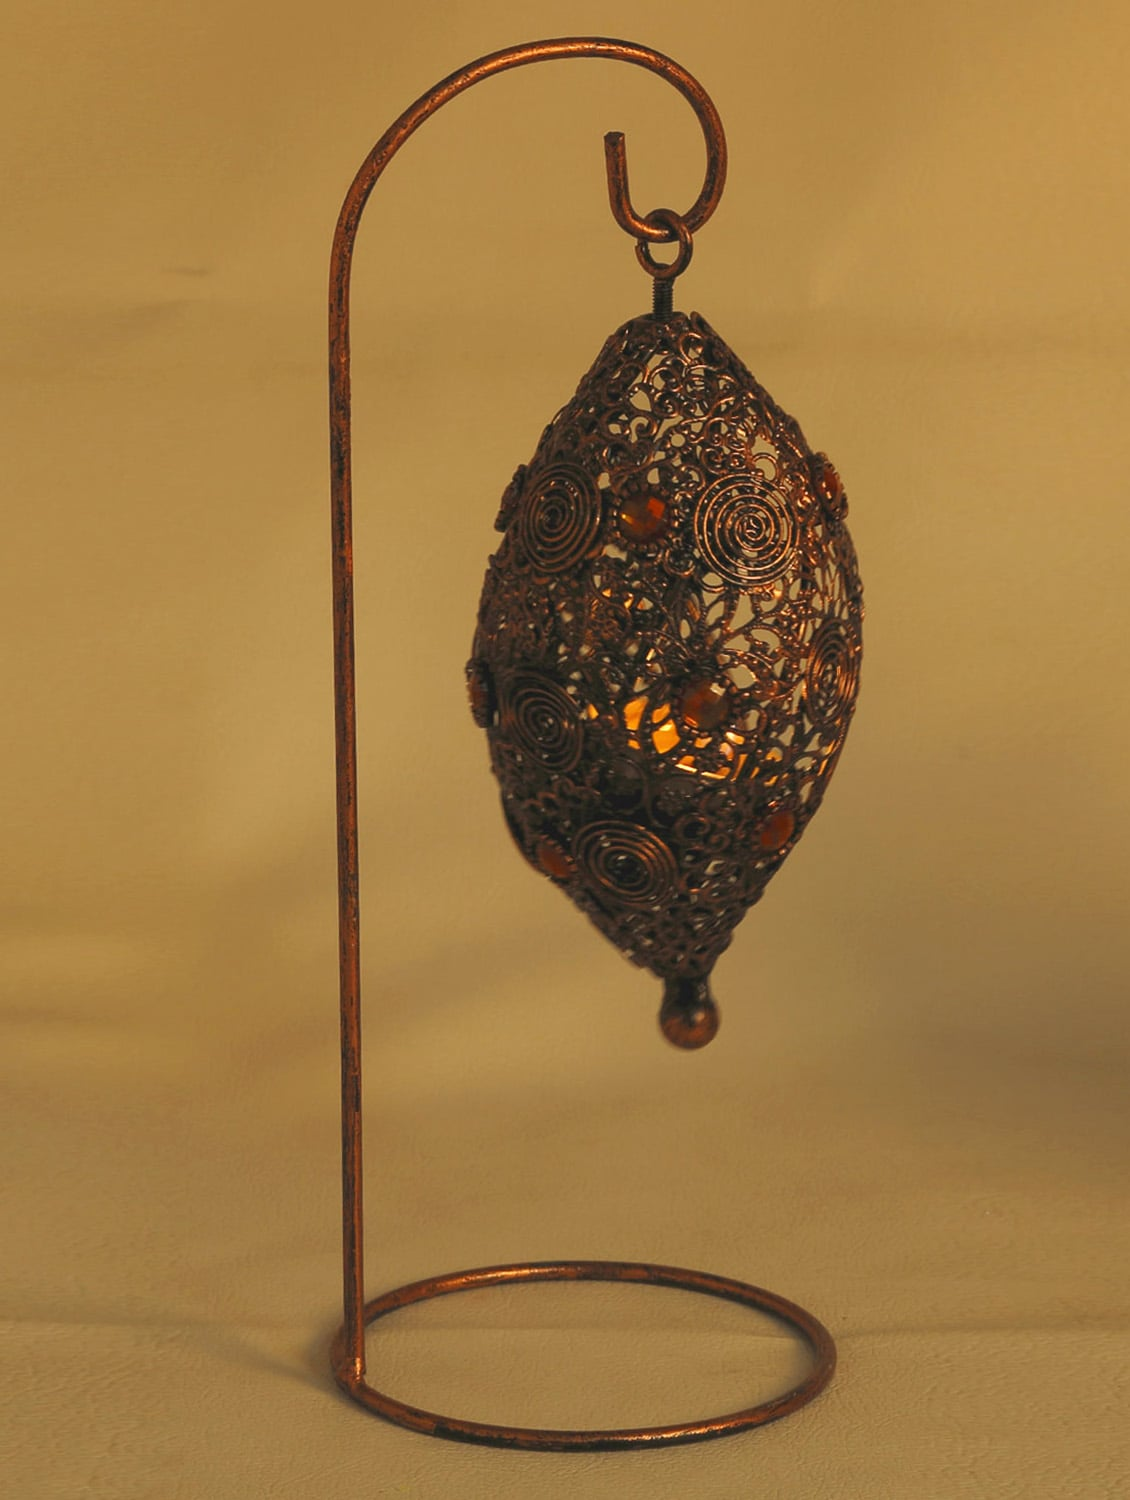 Bird Nest Wrought Iron Tea Light Holder With Colored Glass - Aapno Rajasthan